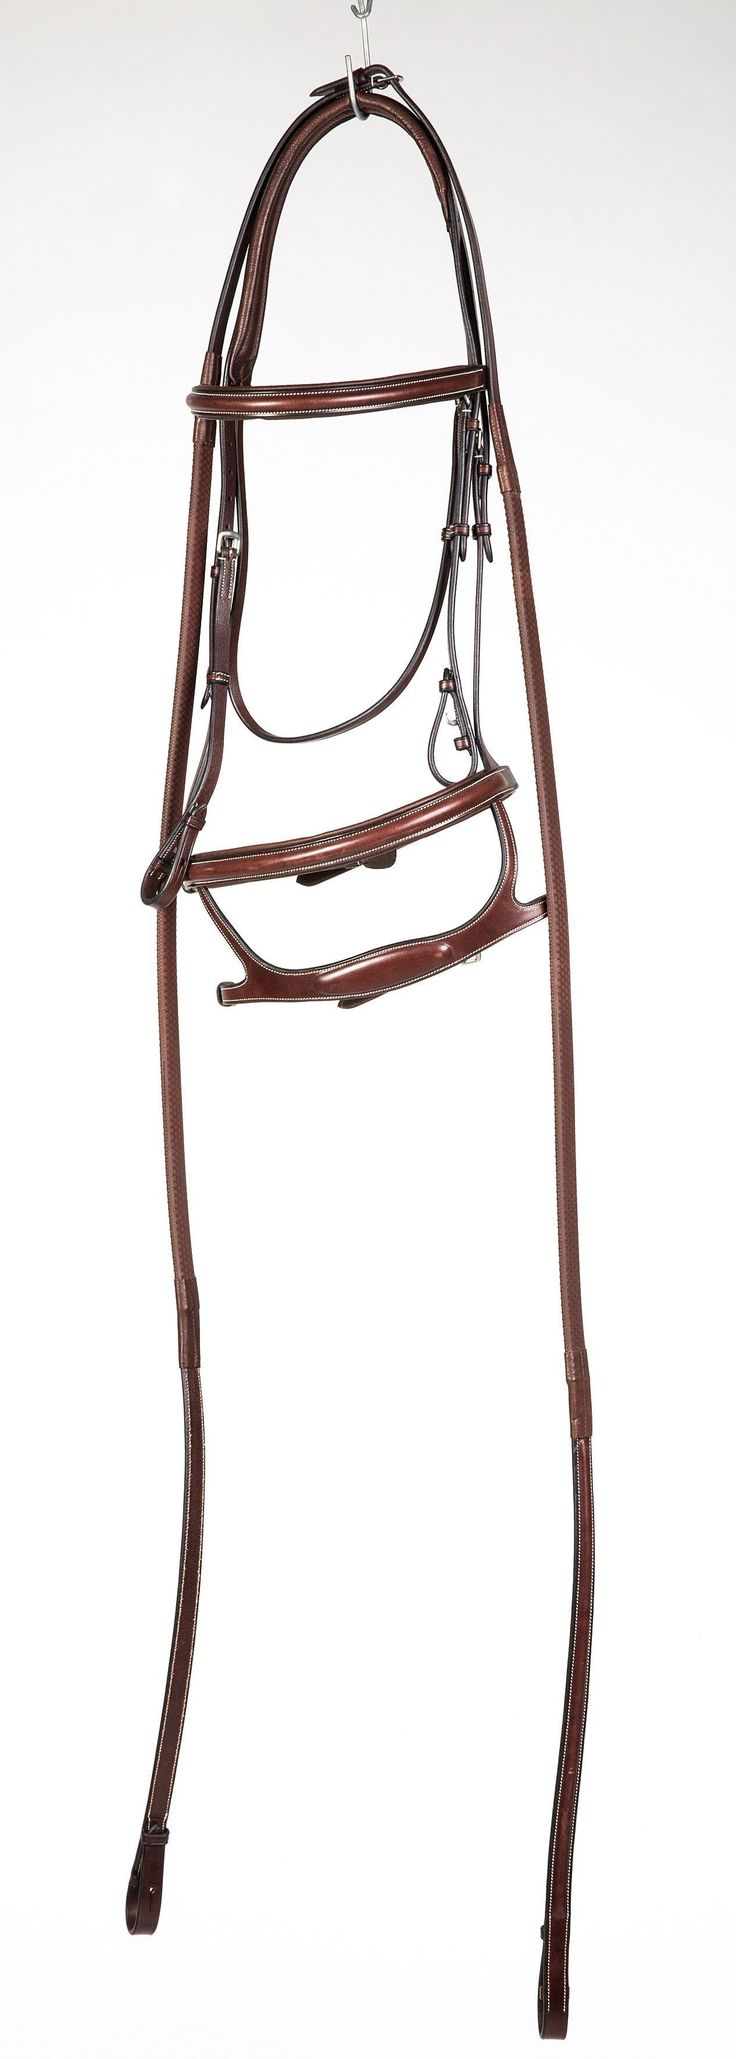 Equiline Bridle with Double Noseband BJ118